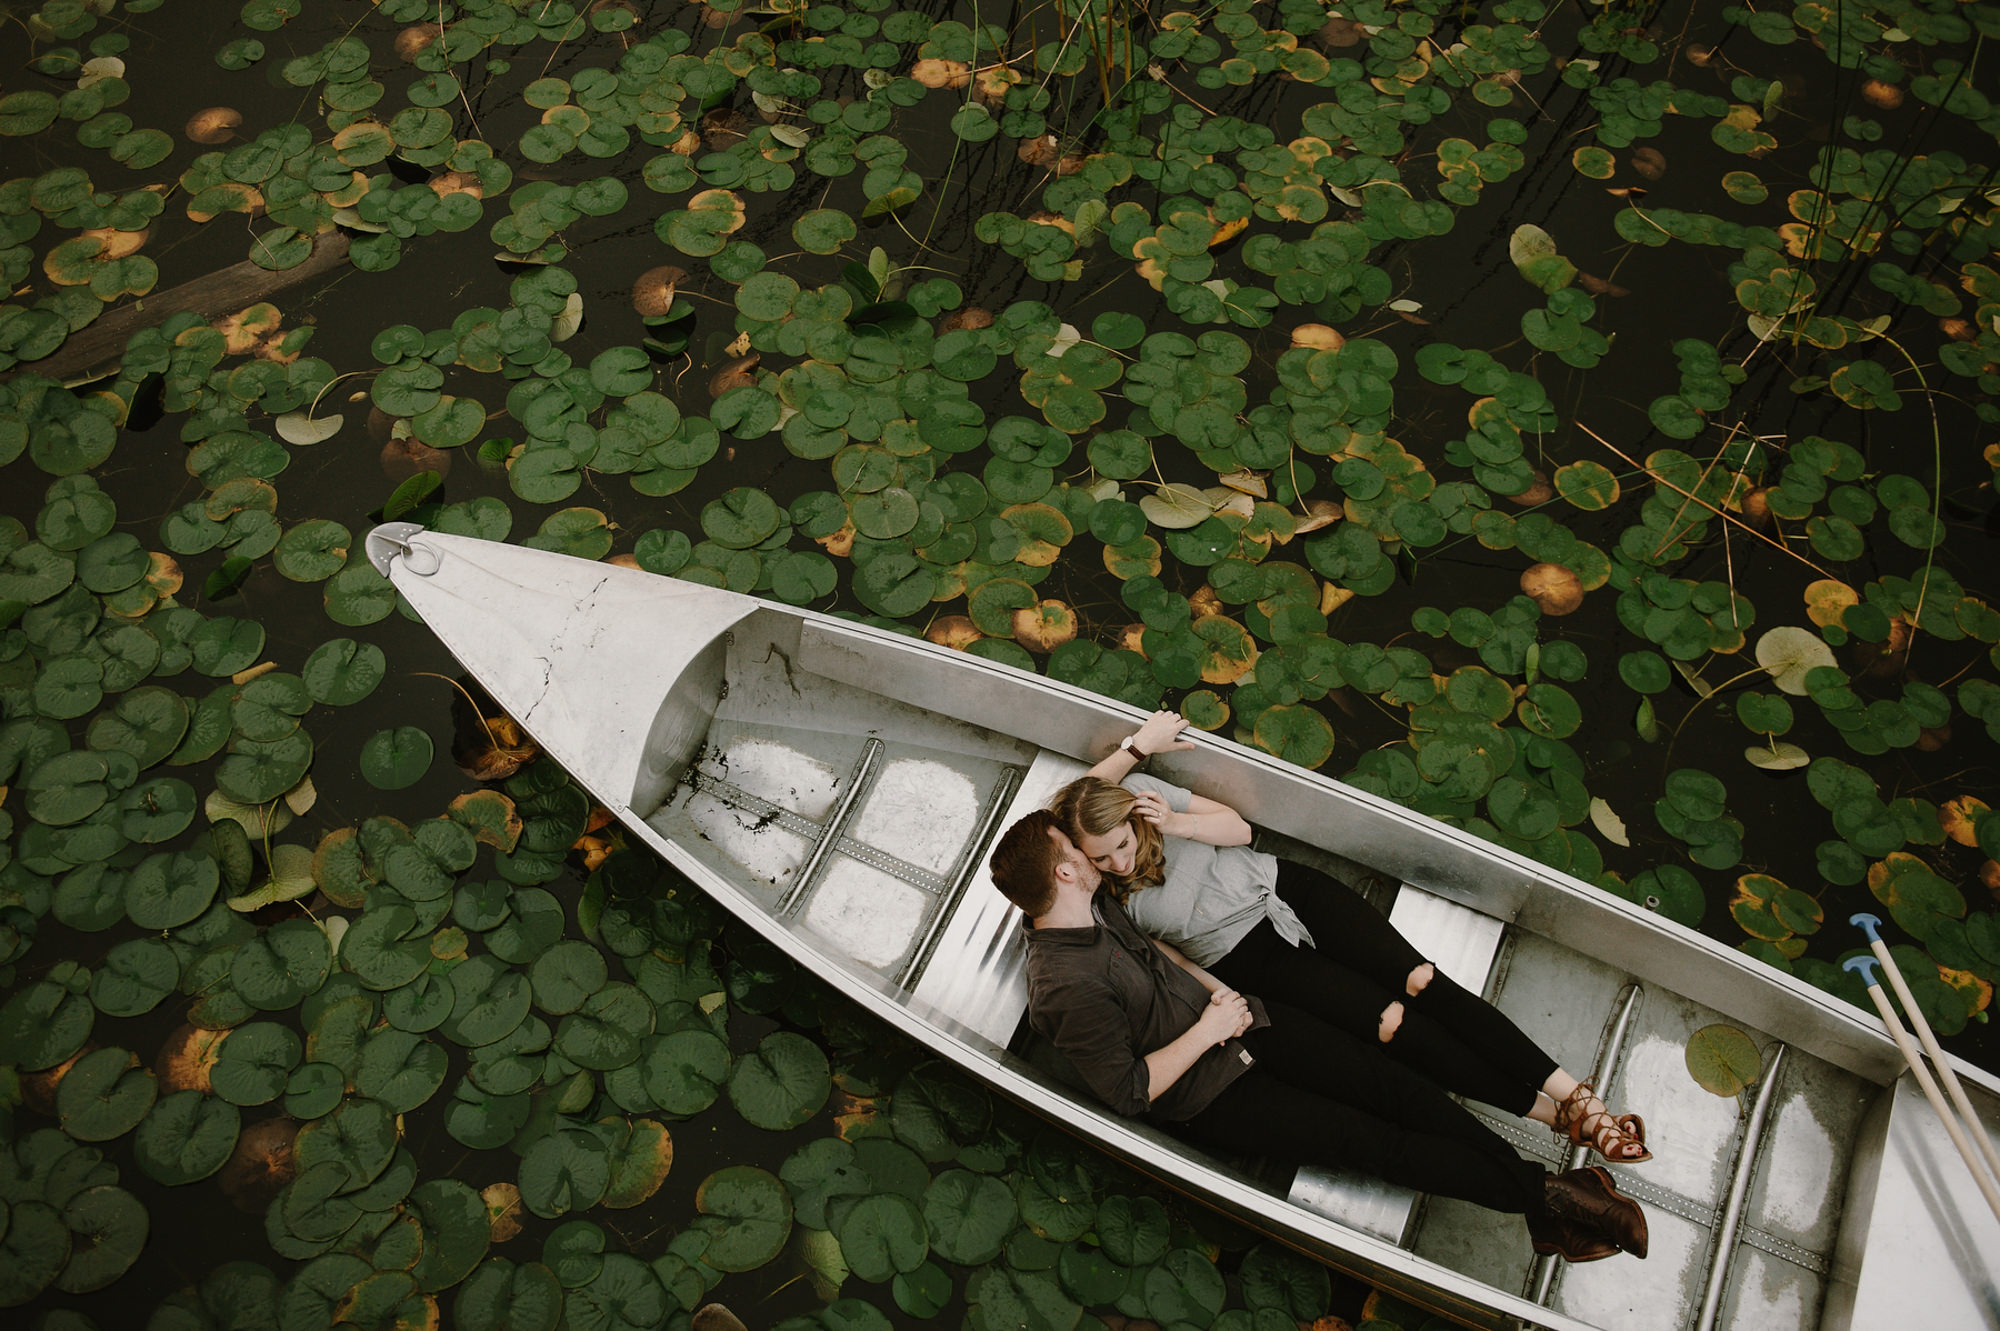 engagement-photos-couple-in-canoe-from-above-worlds-best-wedding-photographers-kristen-marie-parker-seattle-wedding-photographers